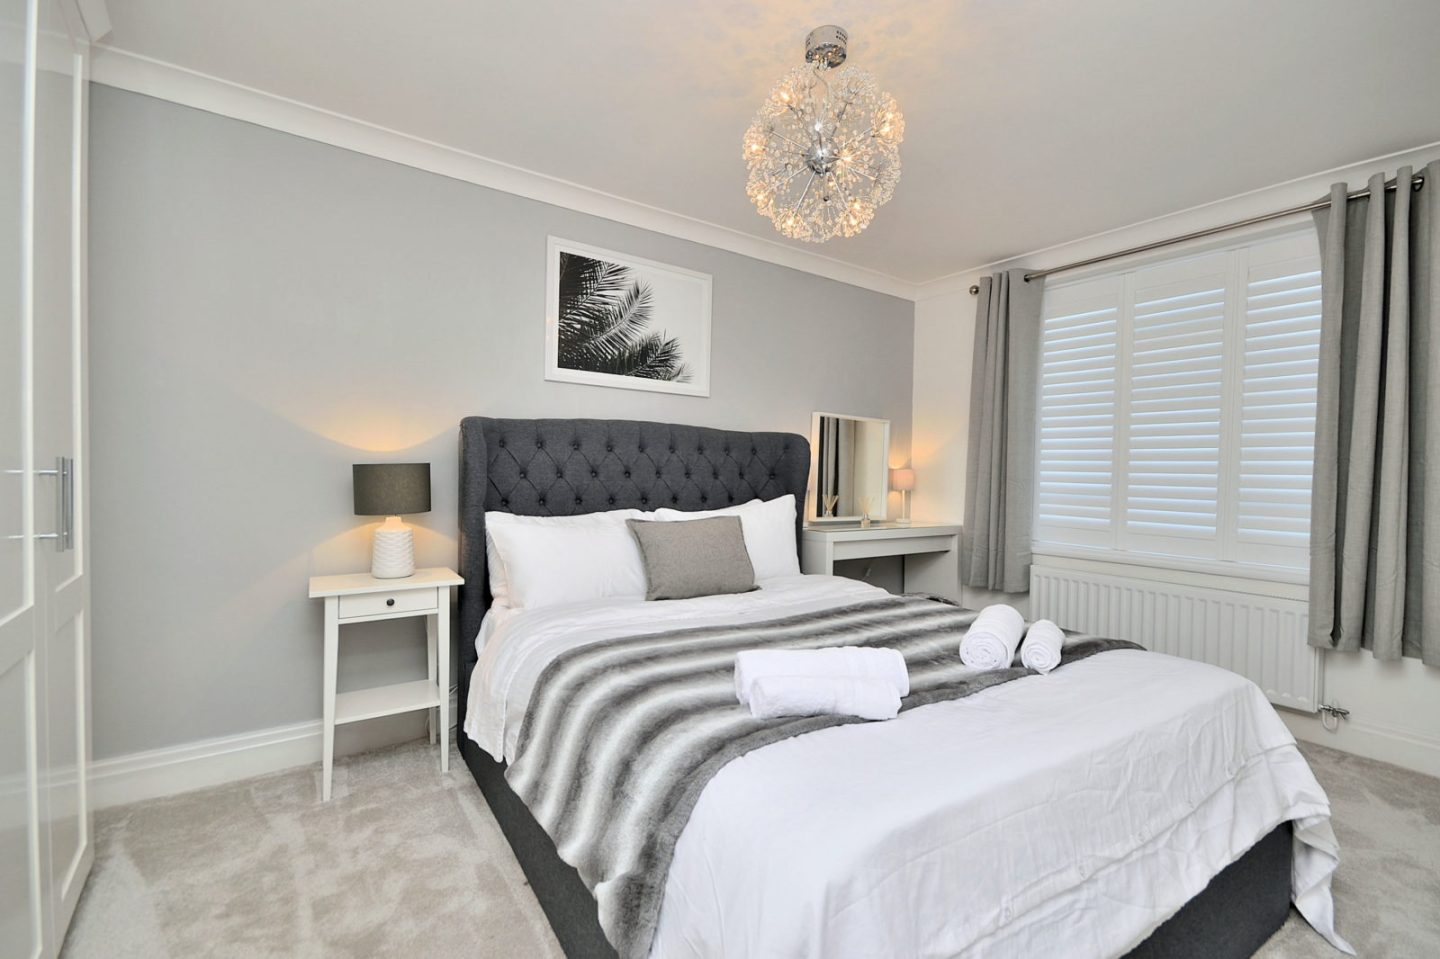 #Chesteraccomodation #stayinchester Chester with kids